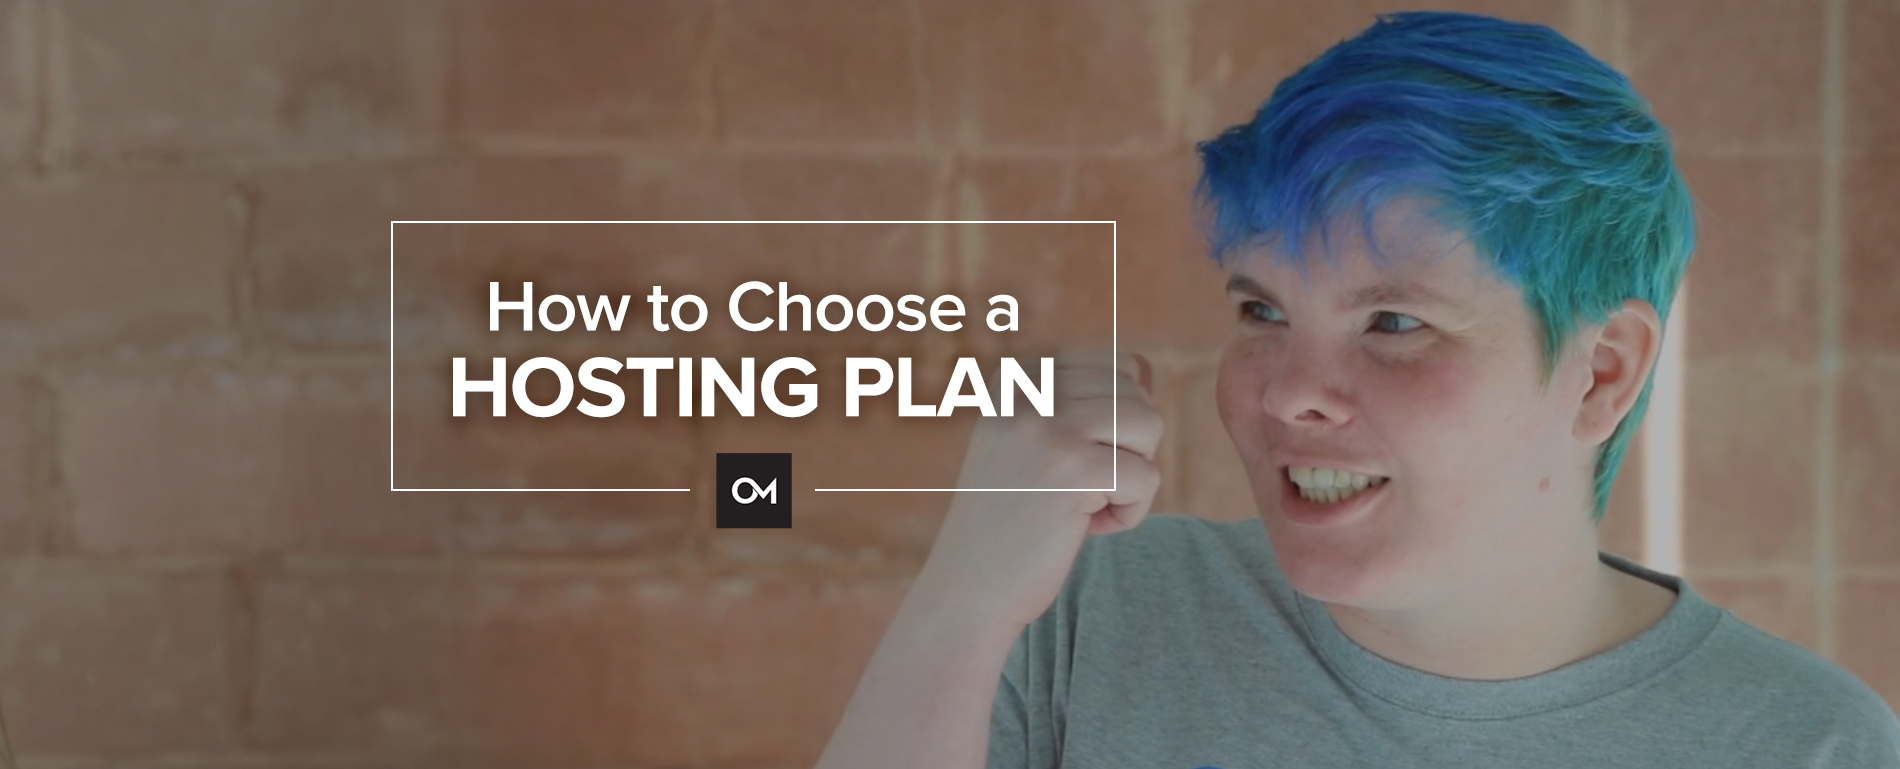 How to Choose a hosting plan